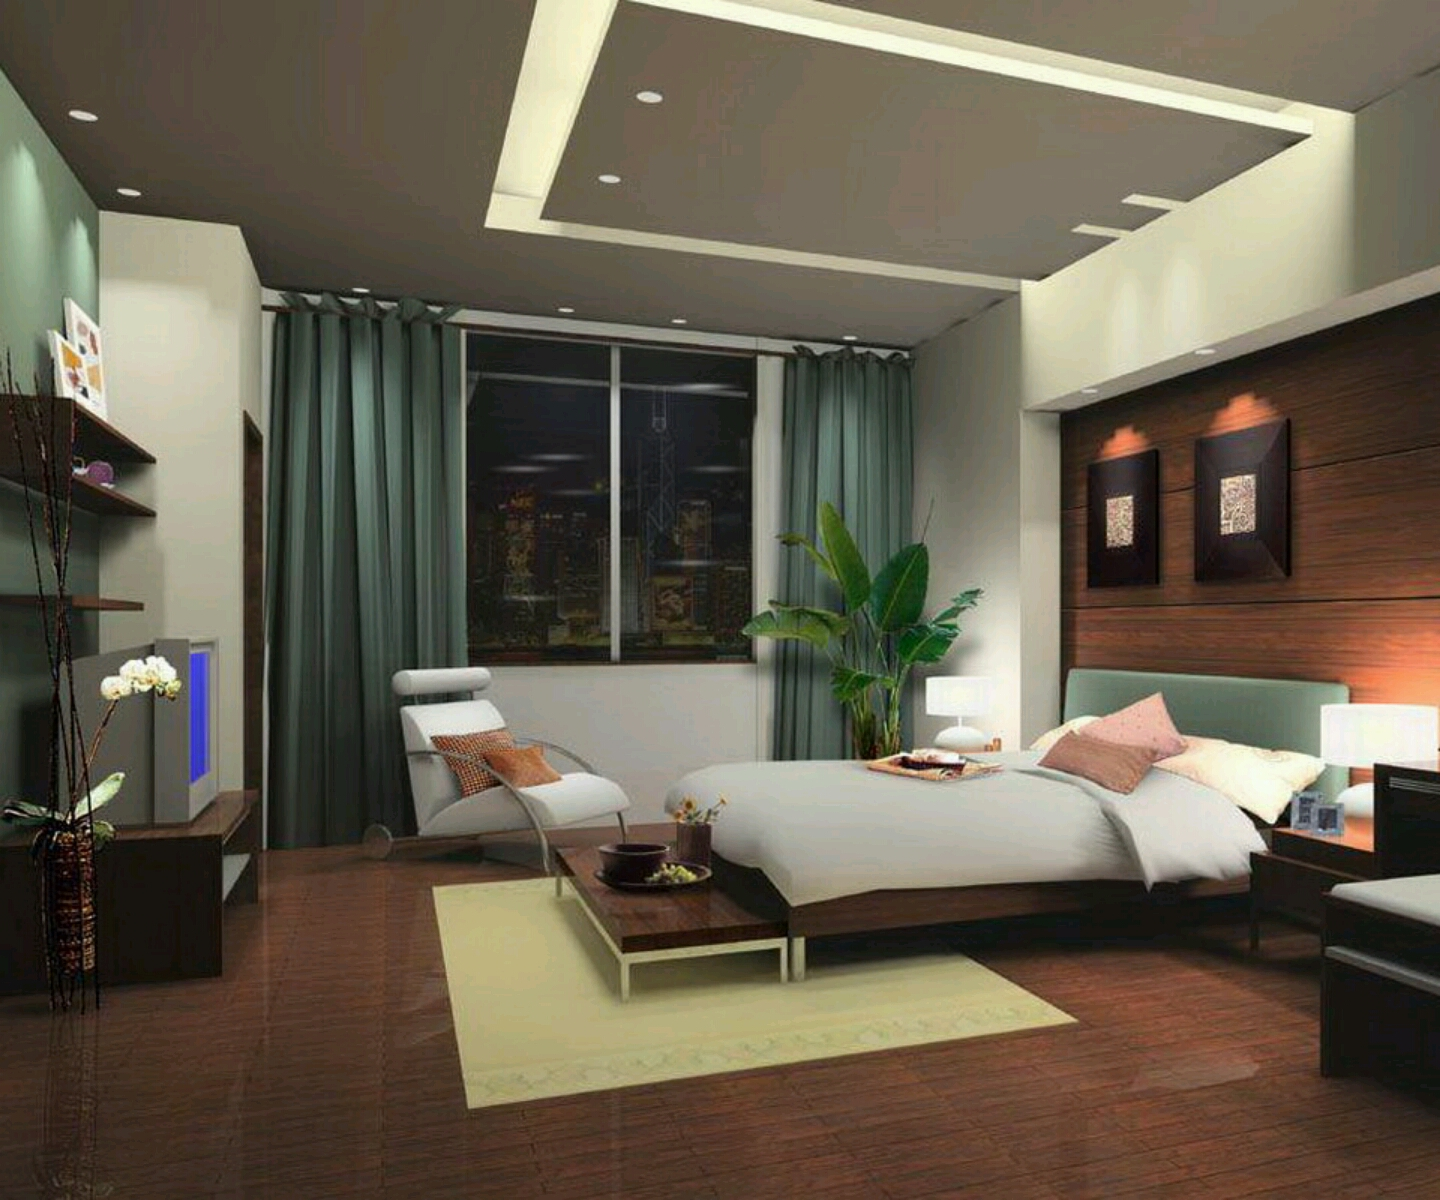 New home designs latest modern bedrooms designs best ideas for Modern bedroom ideas